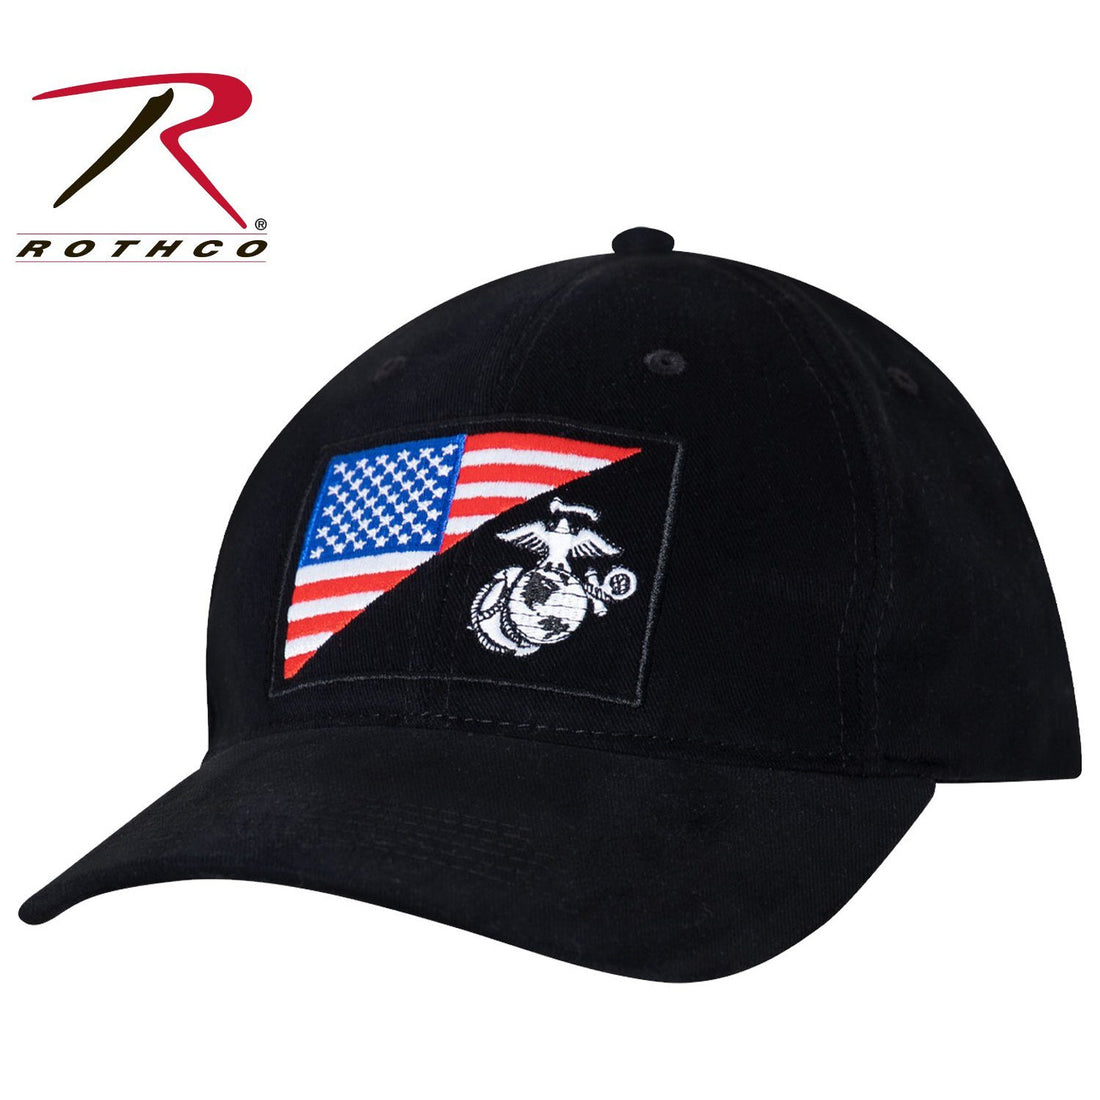 Black USMC hat with the American flag on one half of the front patch and the eagle, globe, and anchor insignia on the other half.